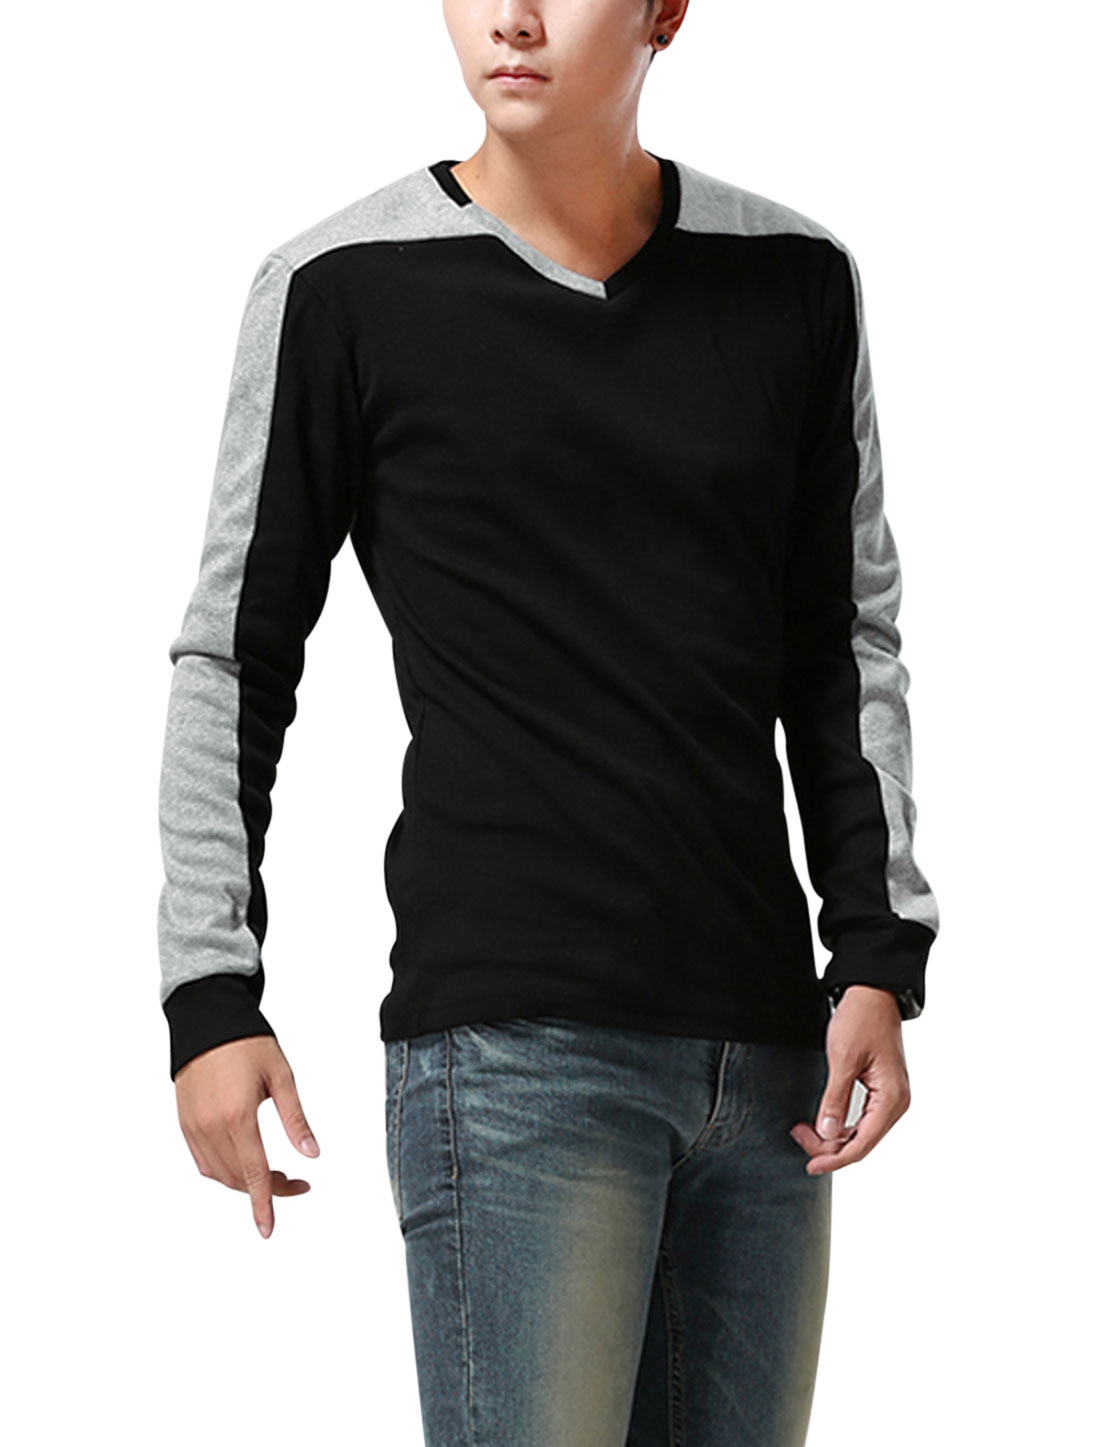 Men V Neck Long Sleeve Colorblock Trendy Slim Tee Black M